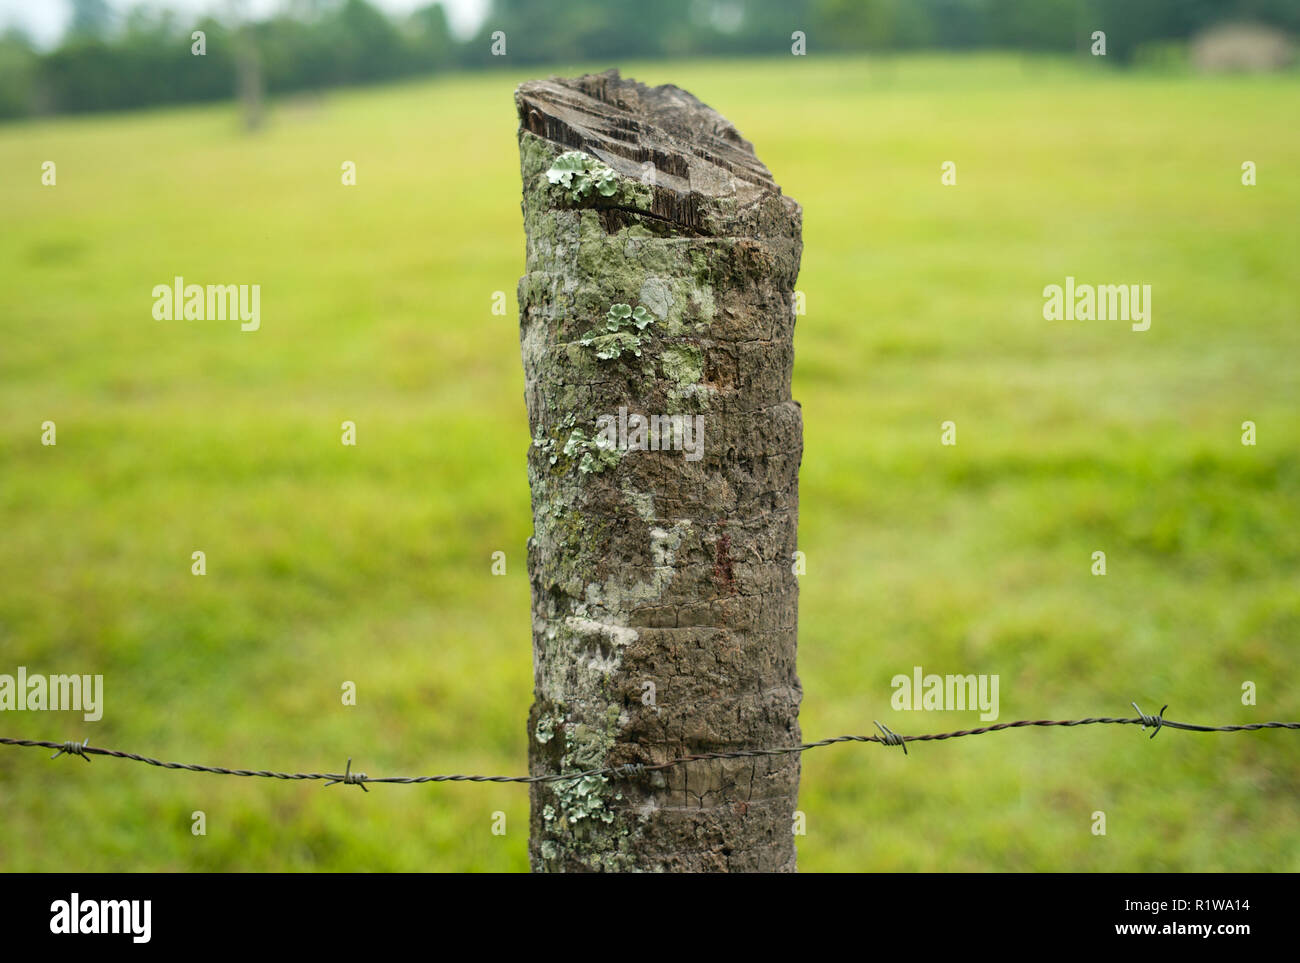 Natural Rough Wooden Fencepost with Barbed Wire on a Green Meadow with Blurred Background - Stock Image